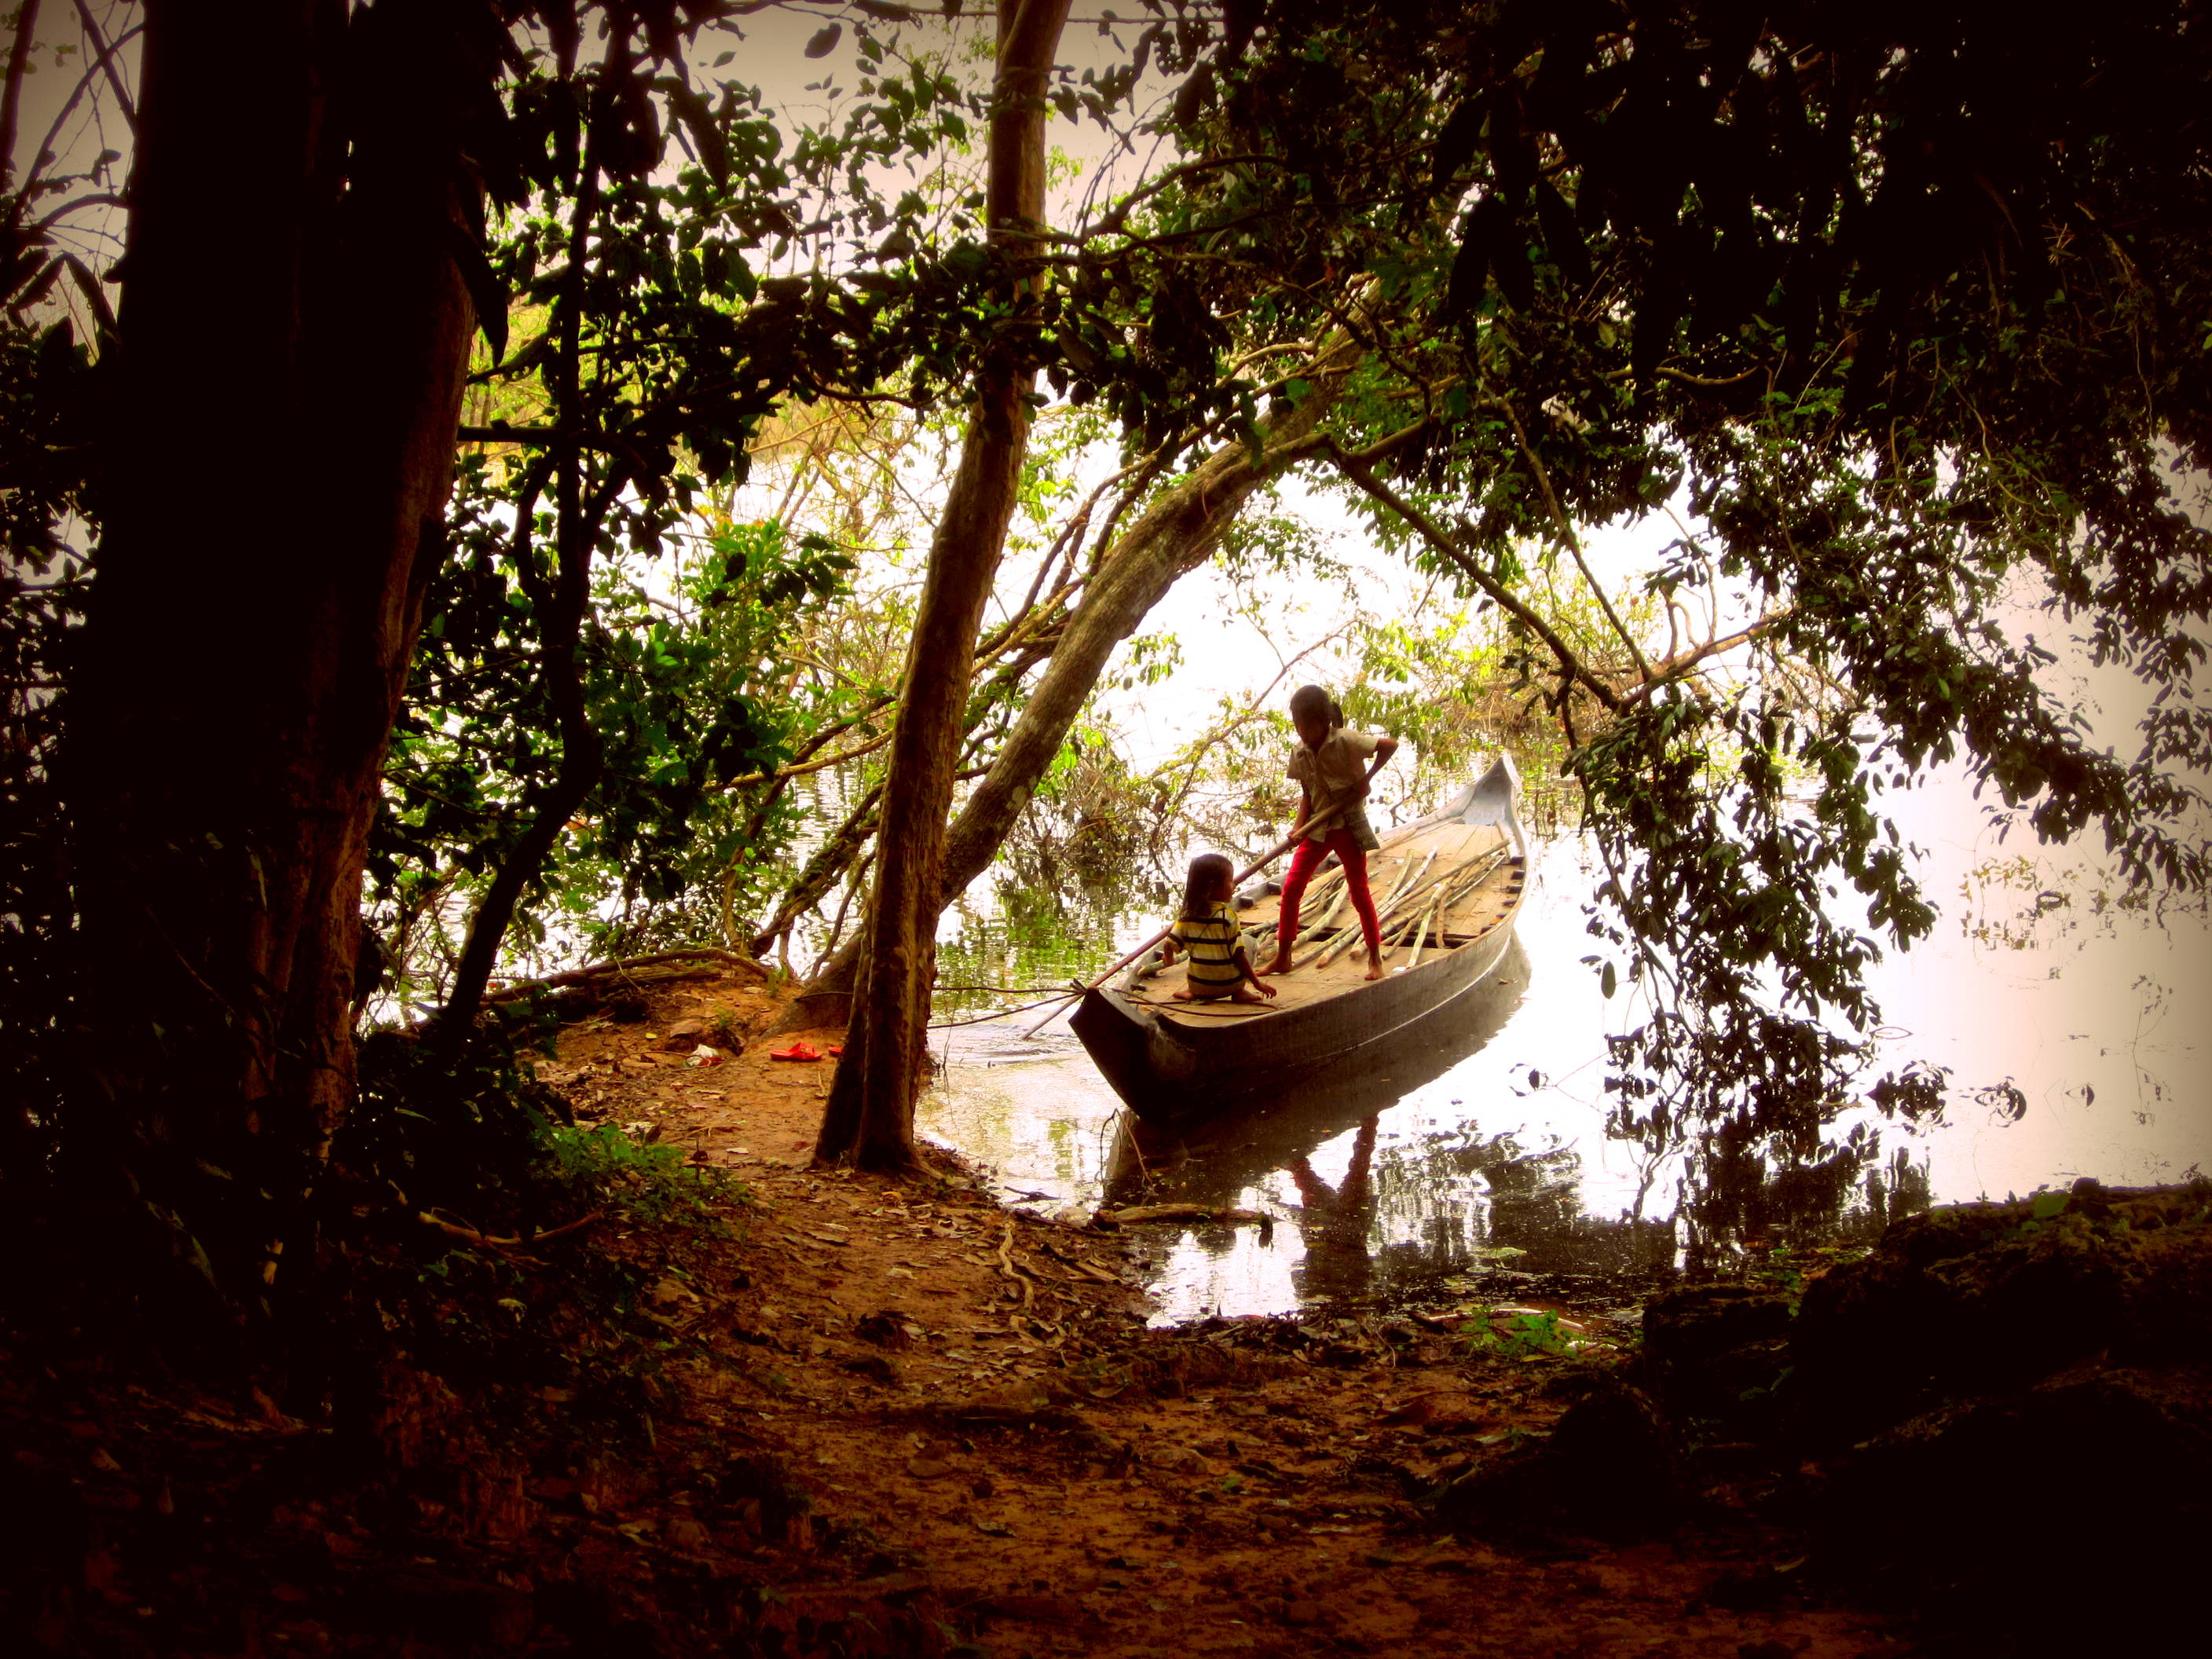 Cambodian girls in their boat